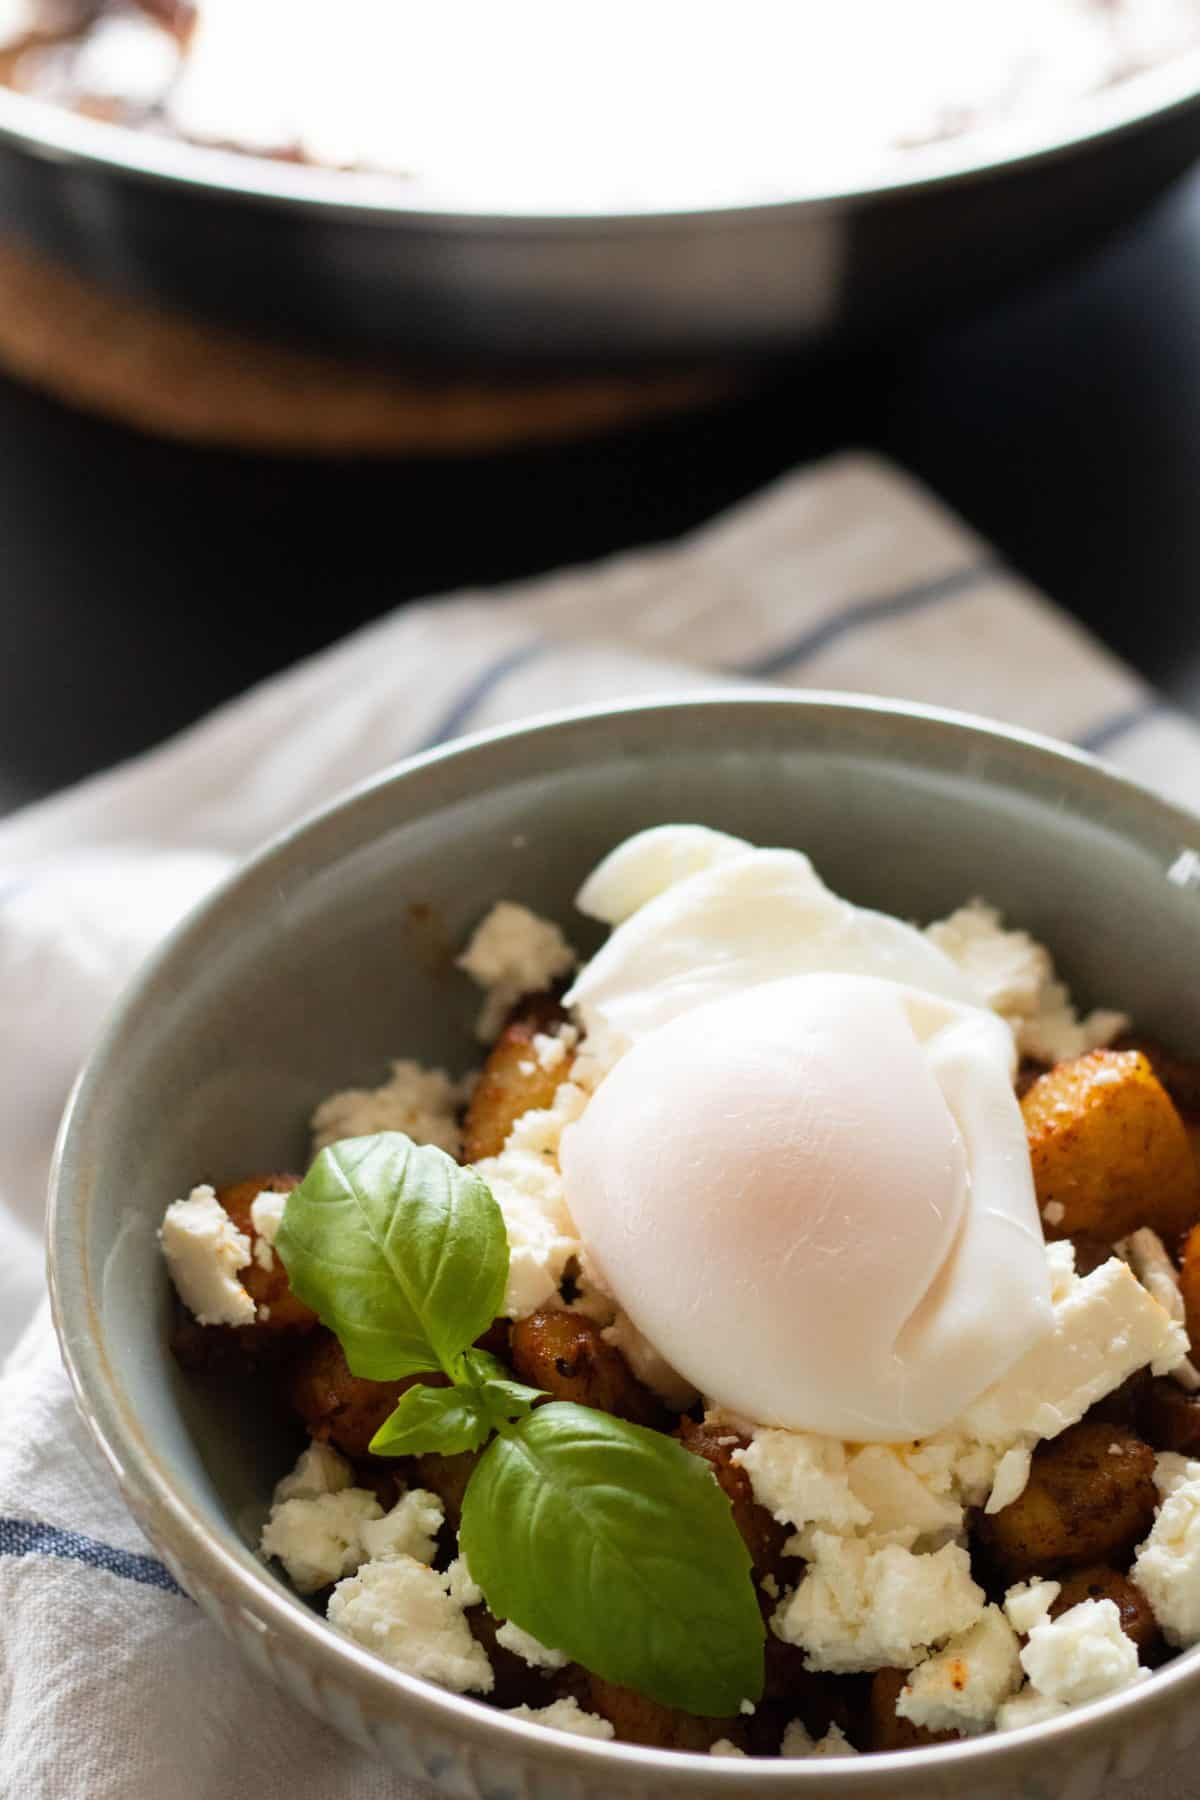 Fried Potatoes Breakfast Bowl with Feta Cheese & Poached Egg